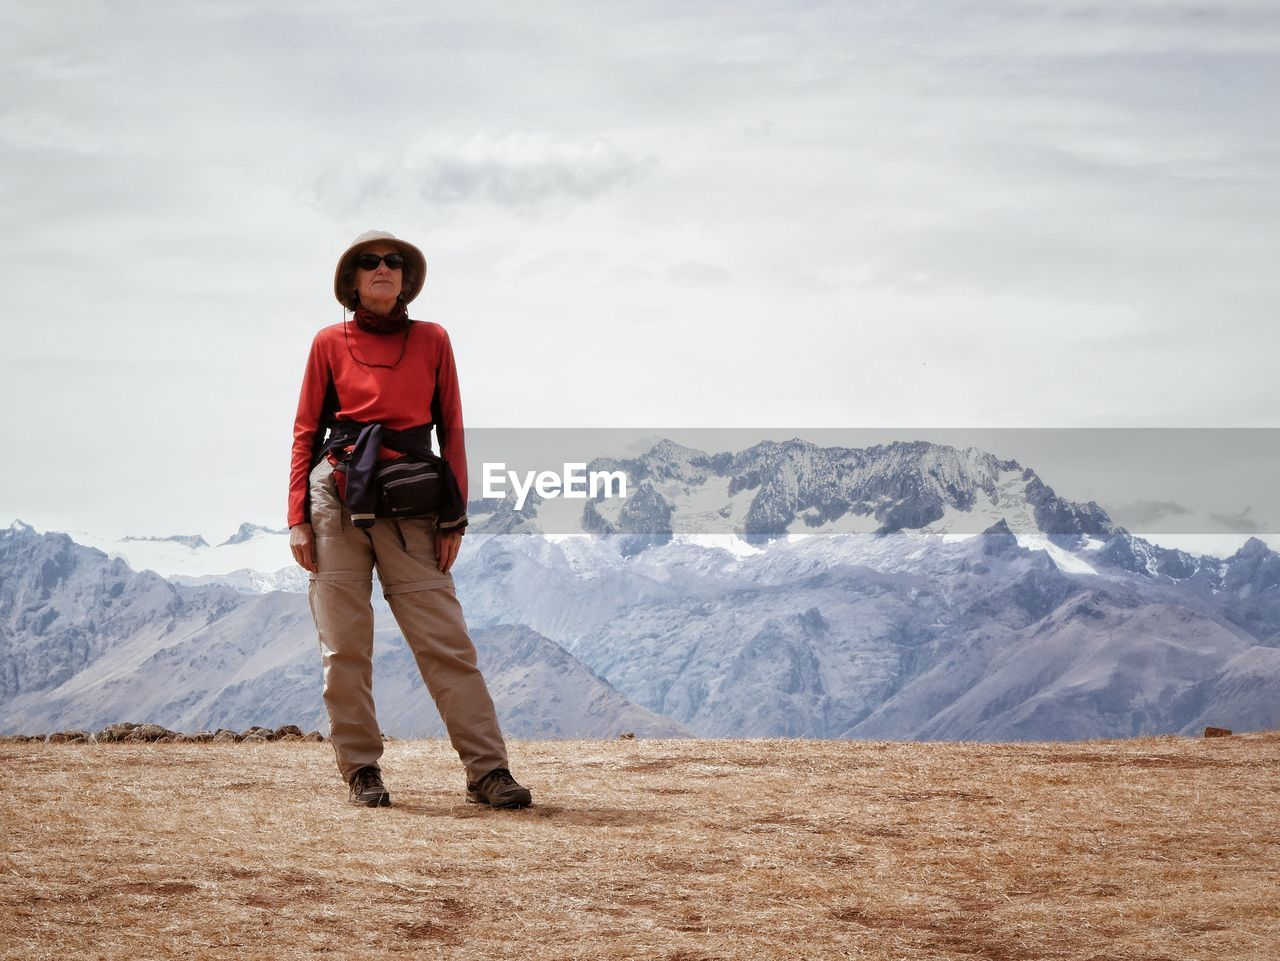 mountain, real people, scenics - nature, leisure activity, beauty in nature, one person, full length, mountain range, sky, cloud - sky, lifestyles, winter, portrait, young adult, standing, looking at camera, nature, front view, outdoors, snowcapped mountain